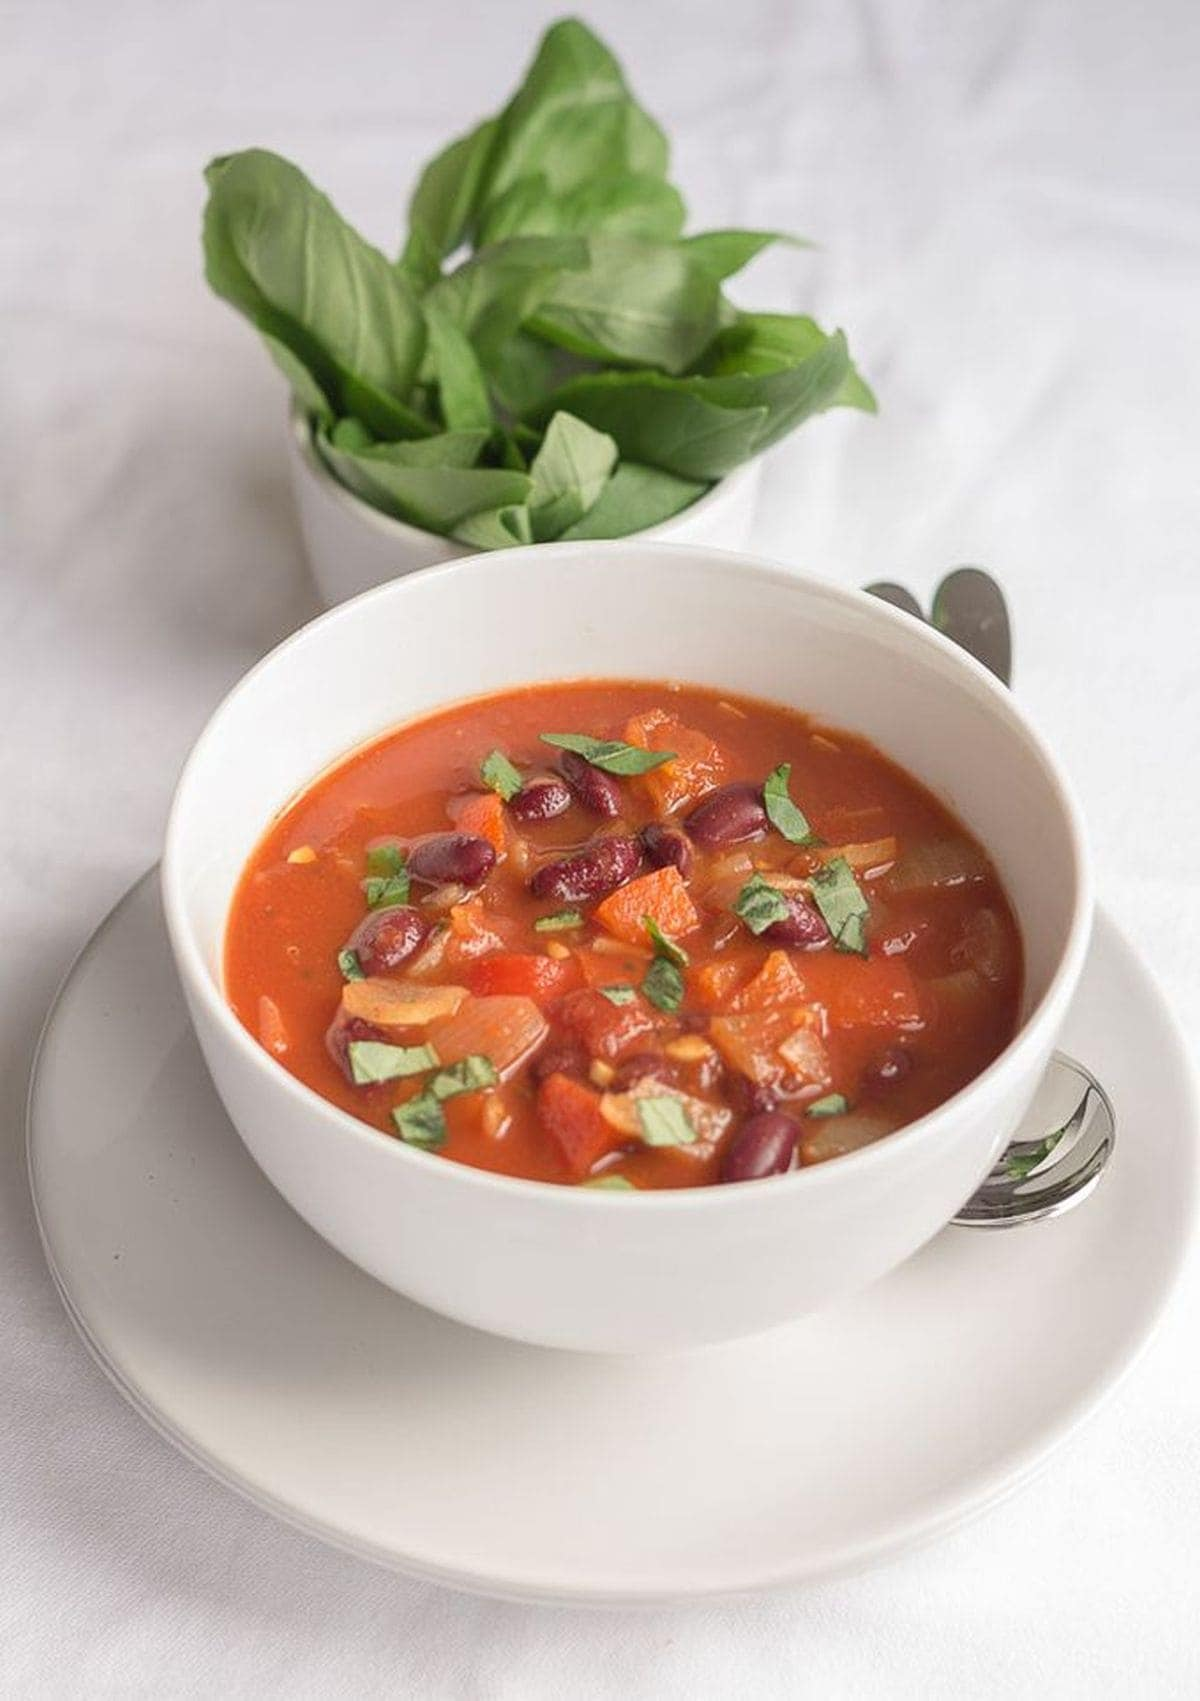 A bowl of red pepper tomato and kidney bean soup with a dish of basil leaves in the background.